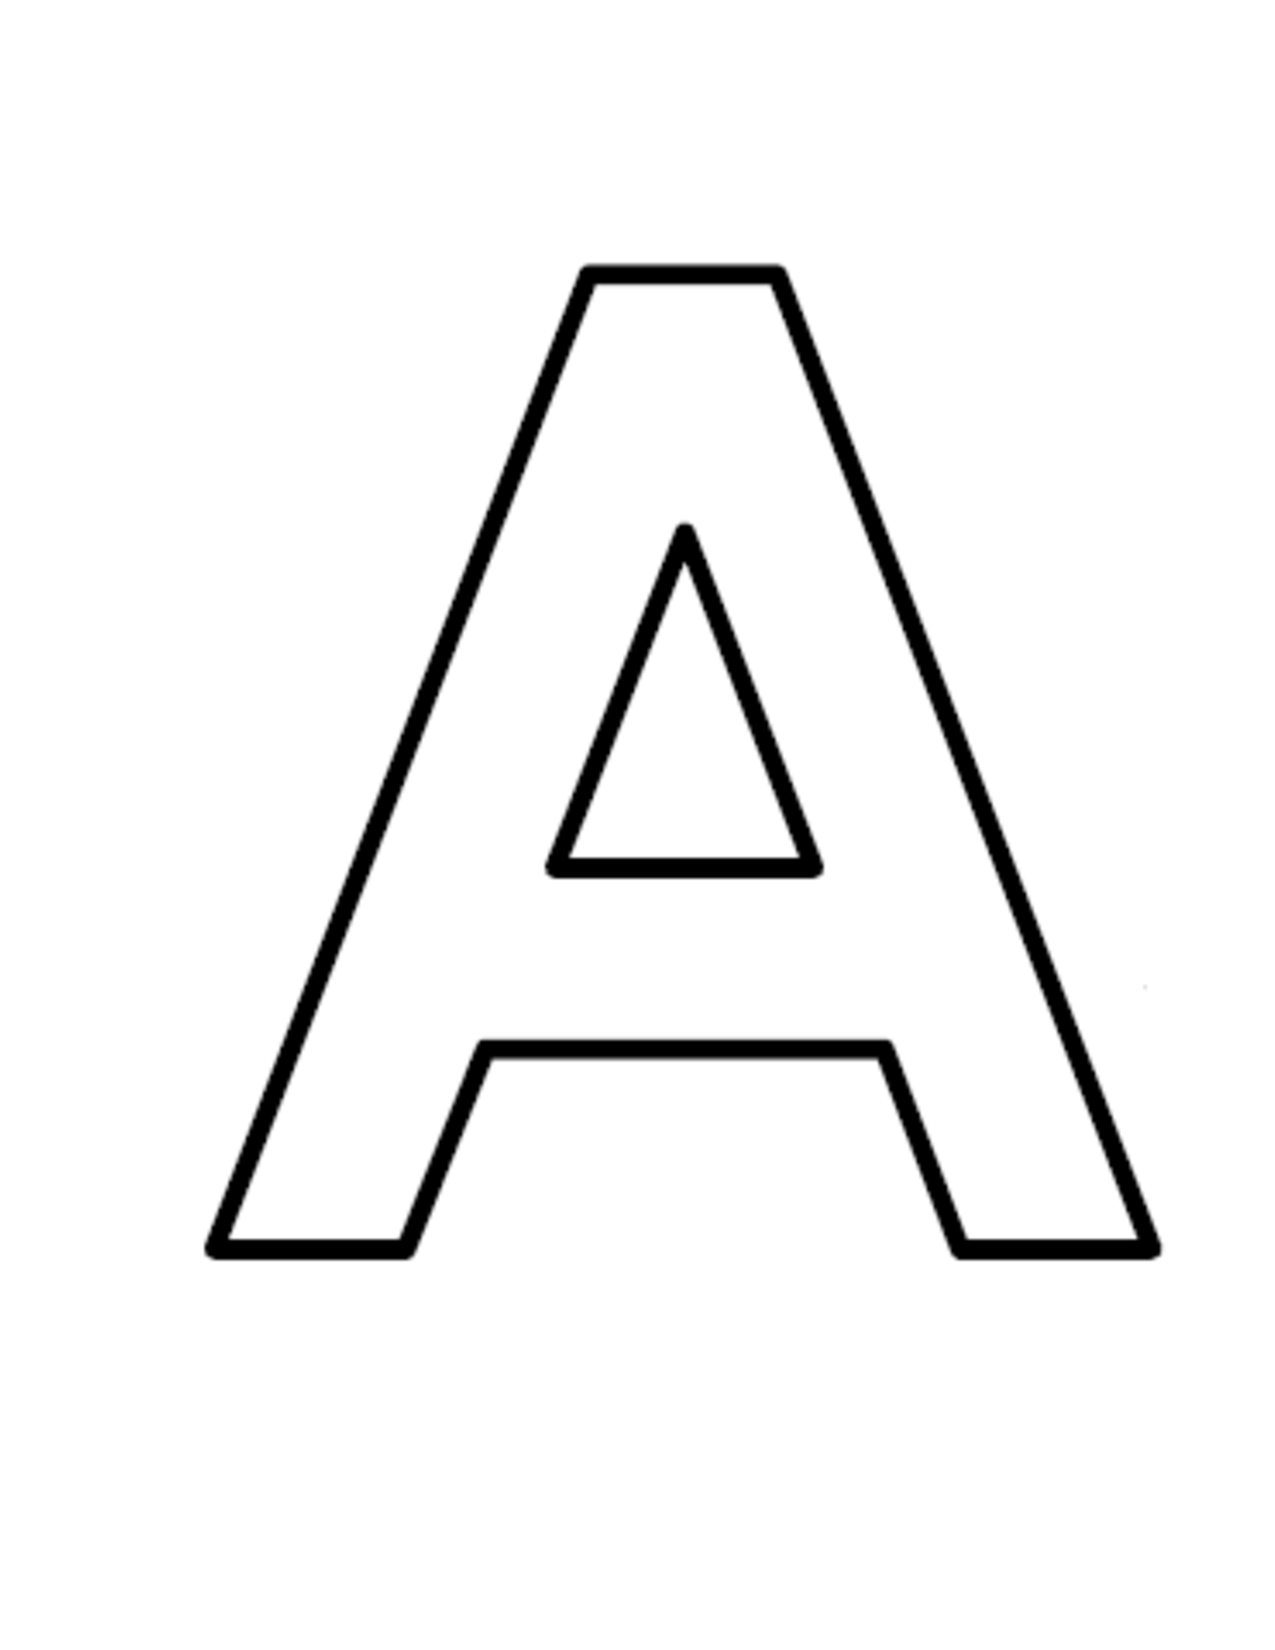 482 Letter A free clipart.